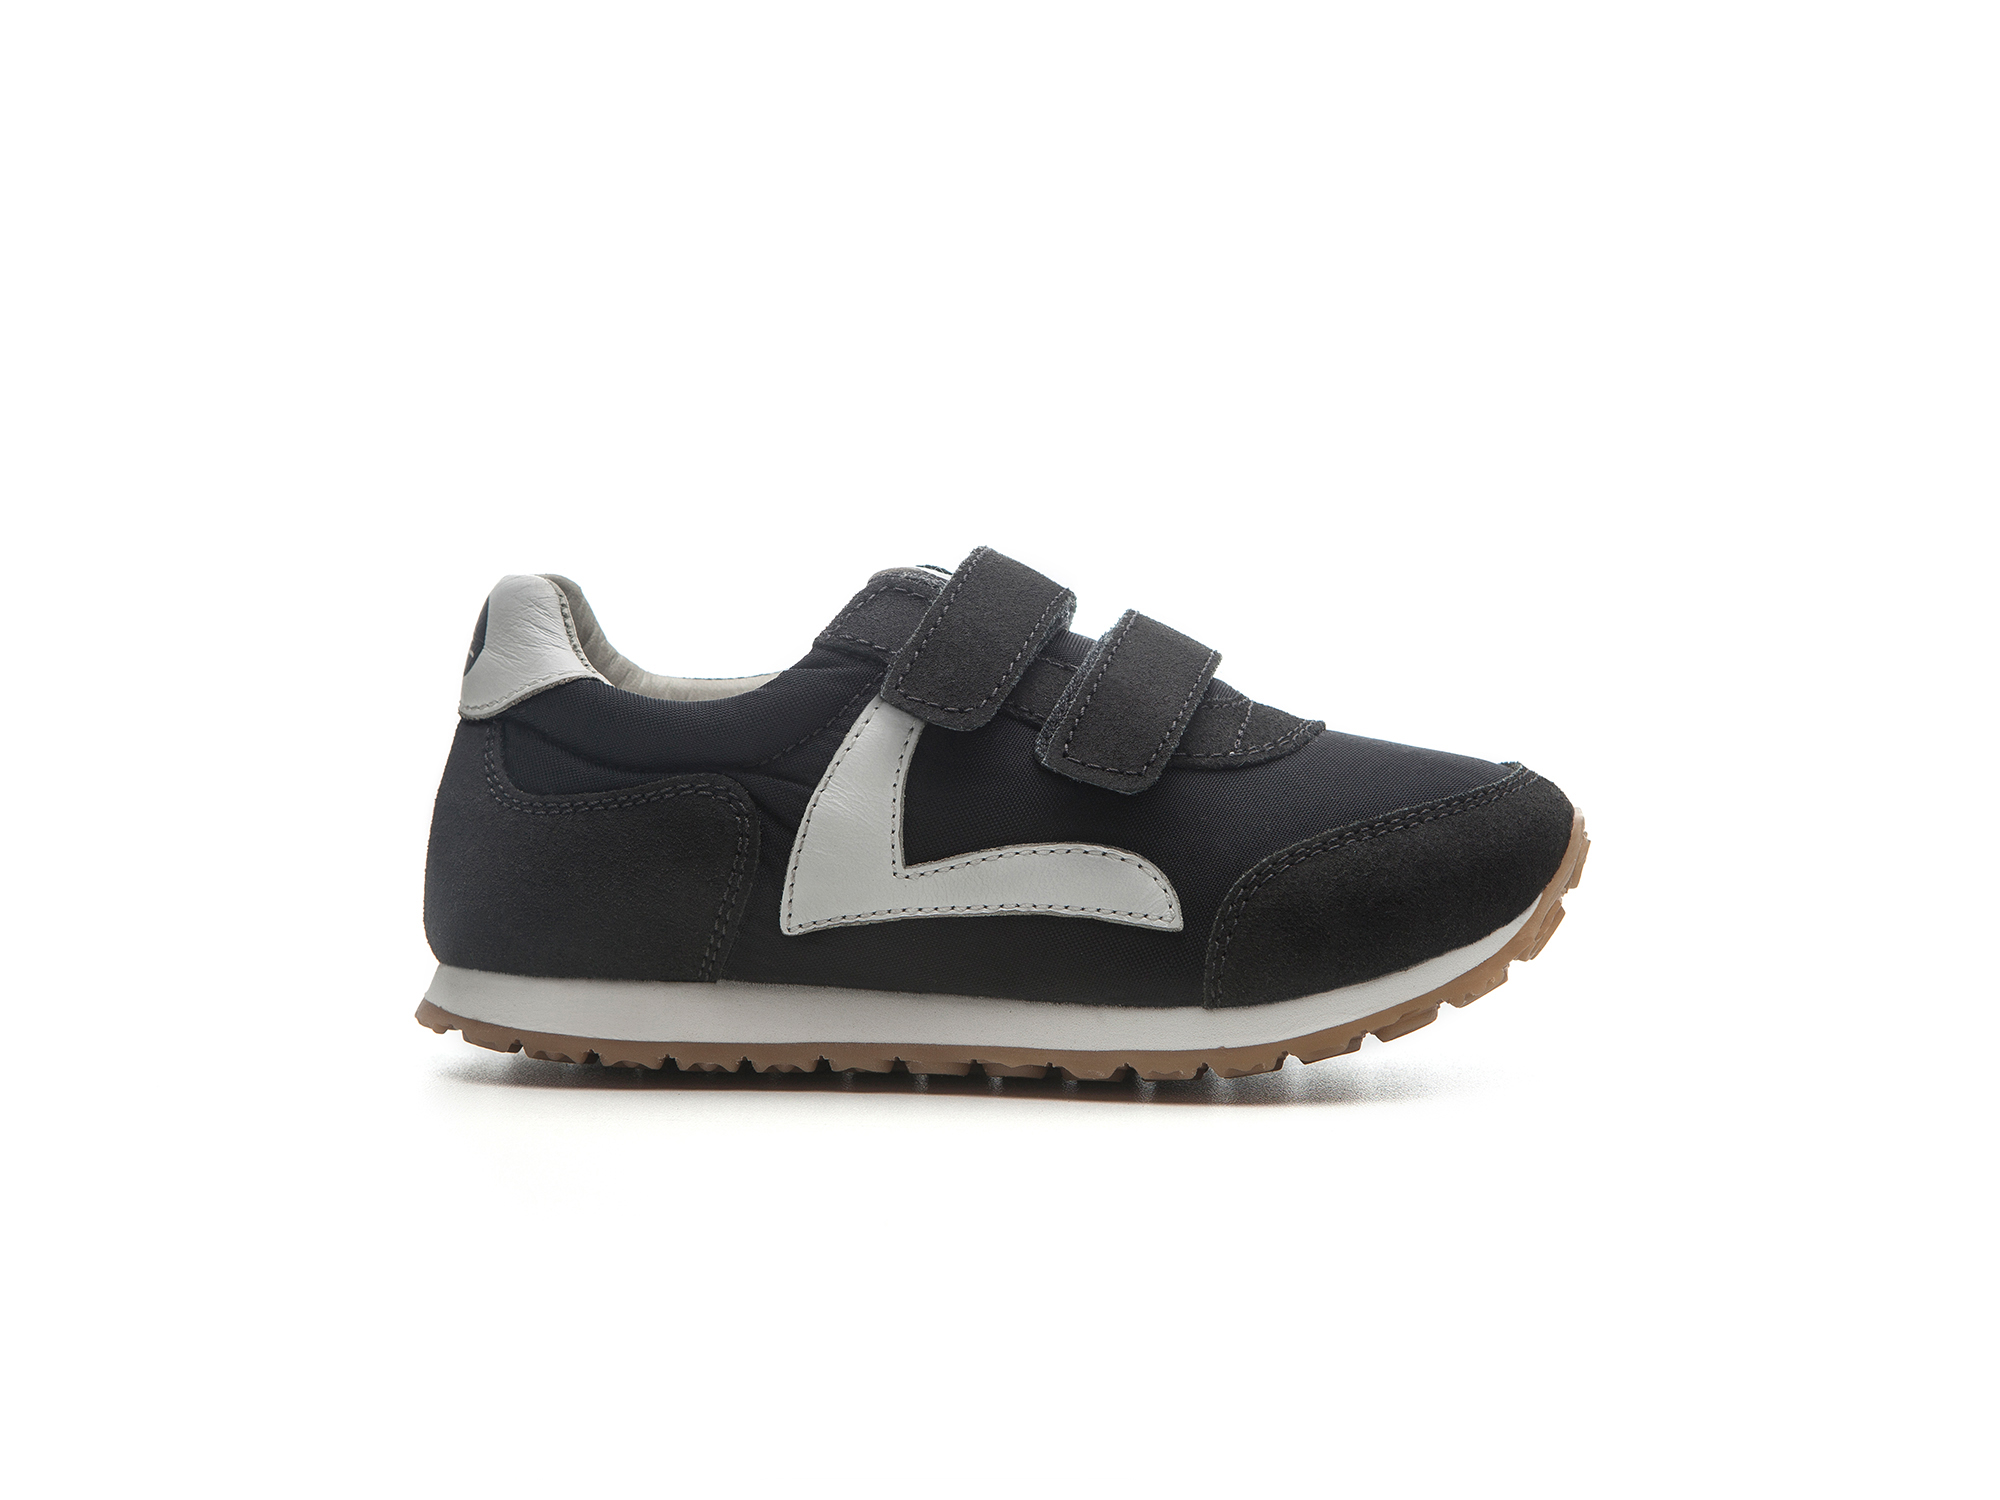 Tênis Little Jump Black Nylon/ Brushed Ash Toddler 2 à 4 anos - 0